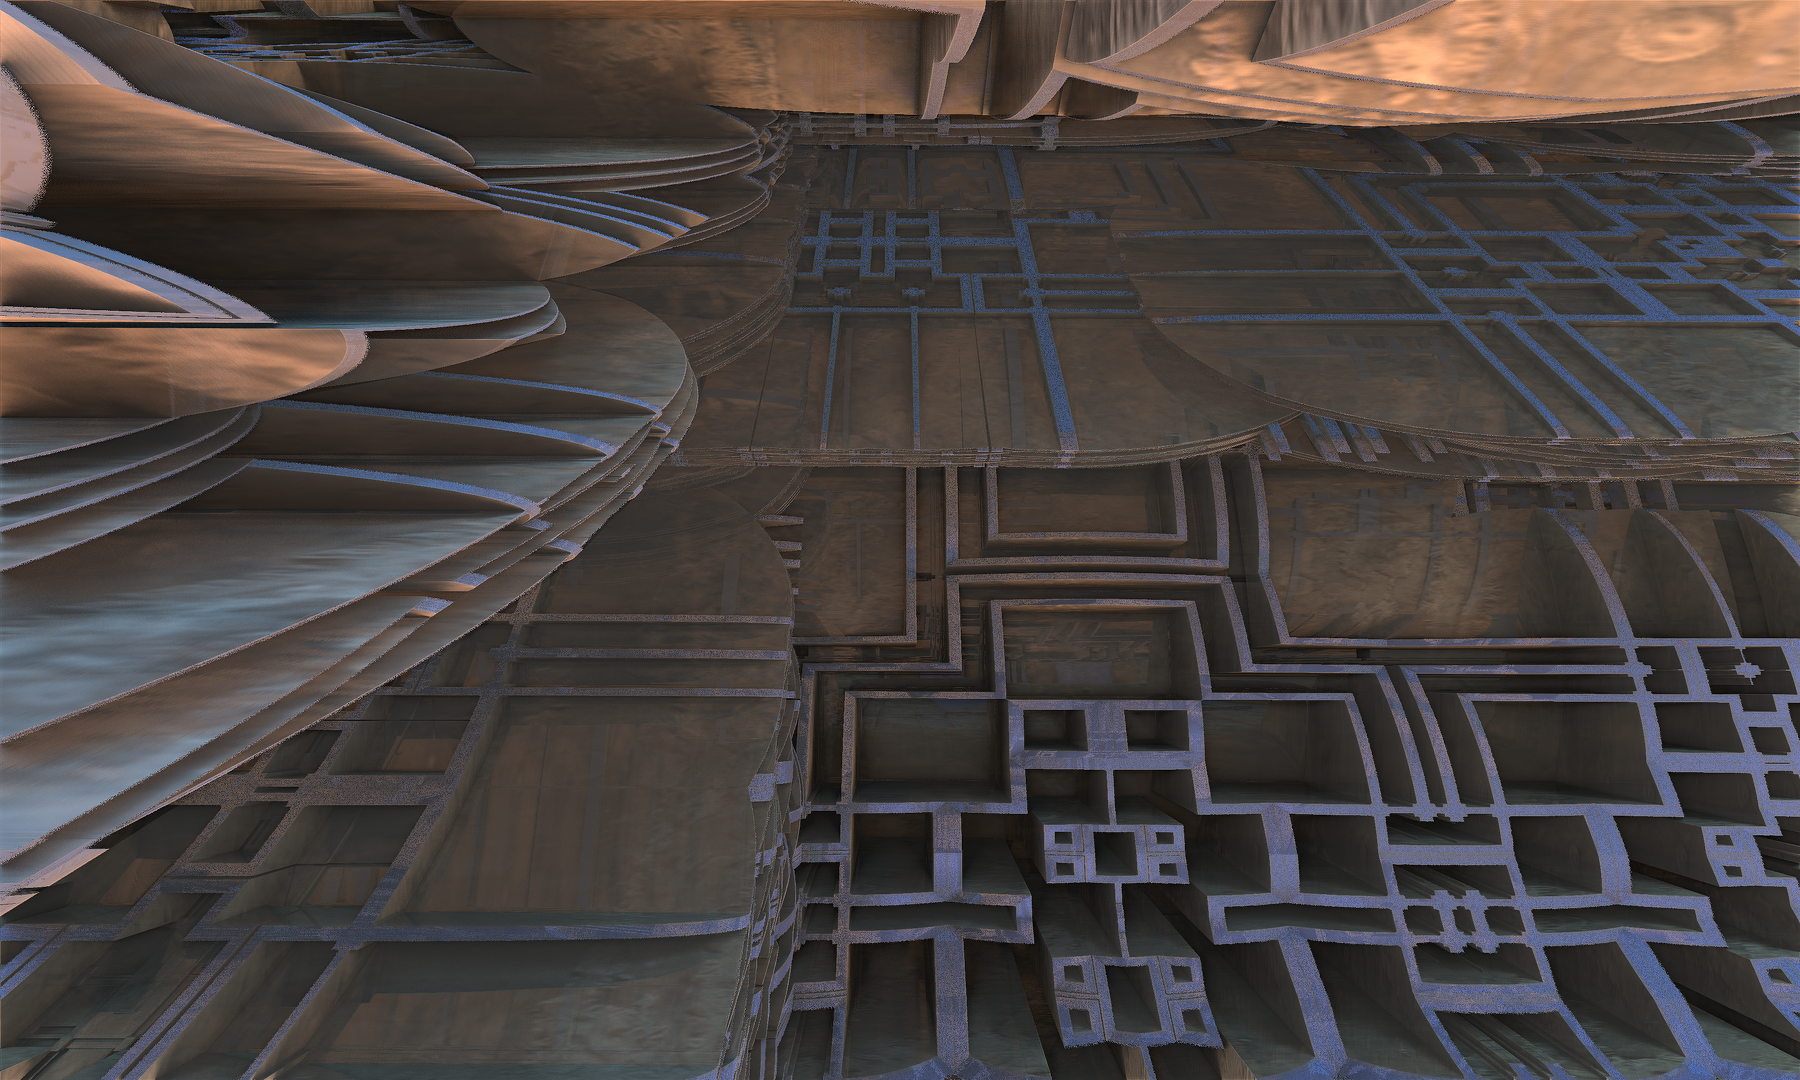 Labyrinth in the Fractal City by Jakeukalane